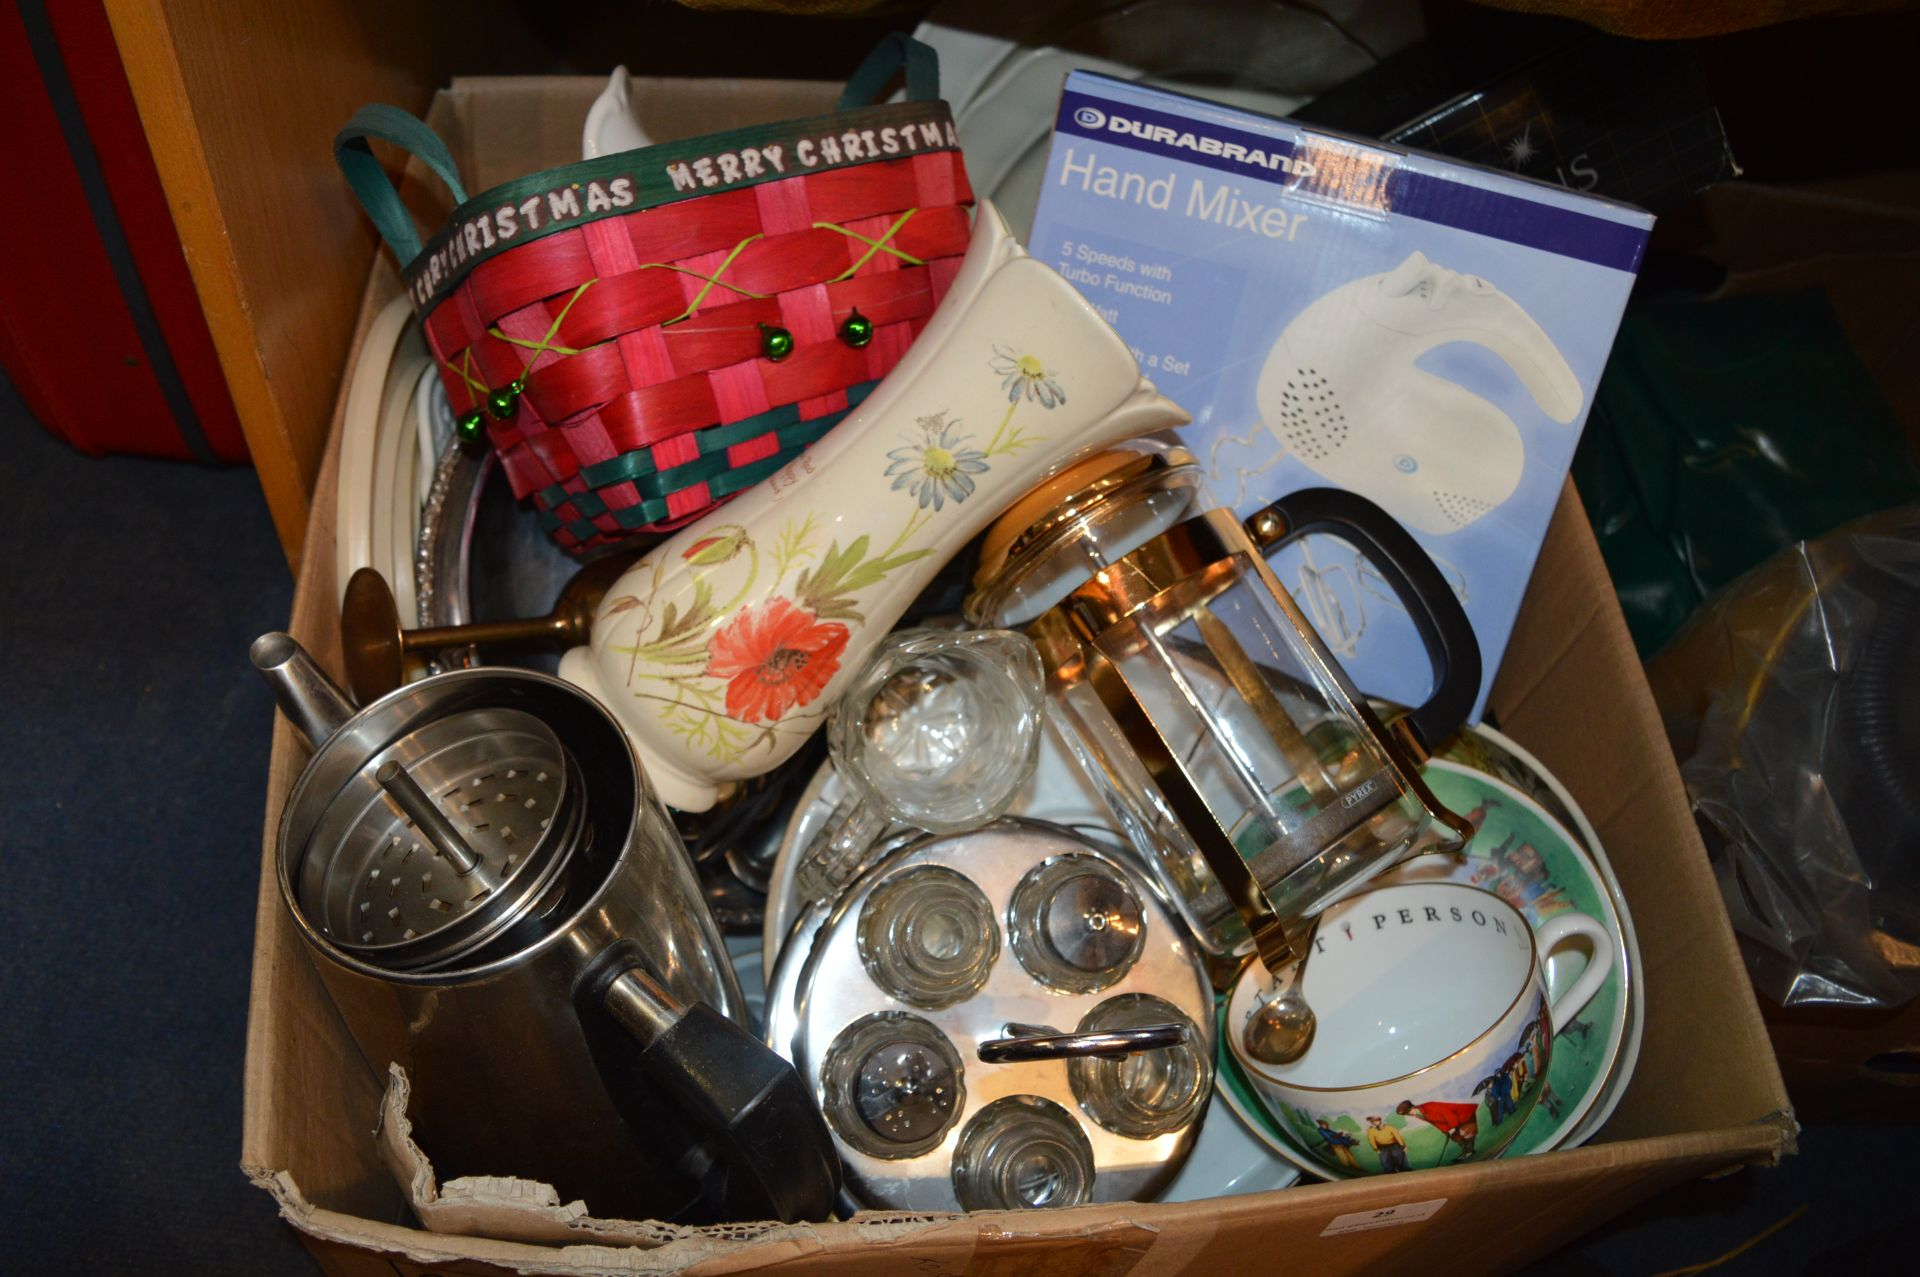 Lot 29 - Large Box of Glass and Pottery Items, Kitchenware,